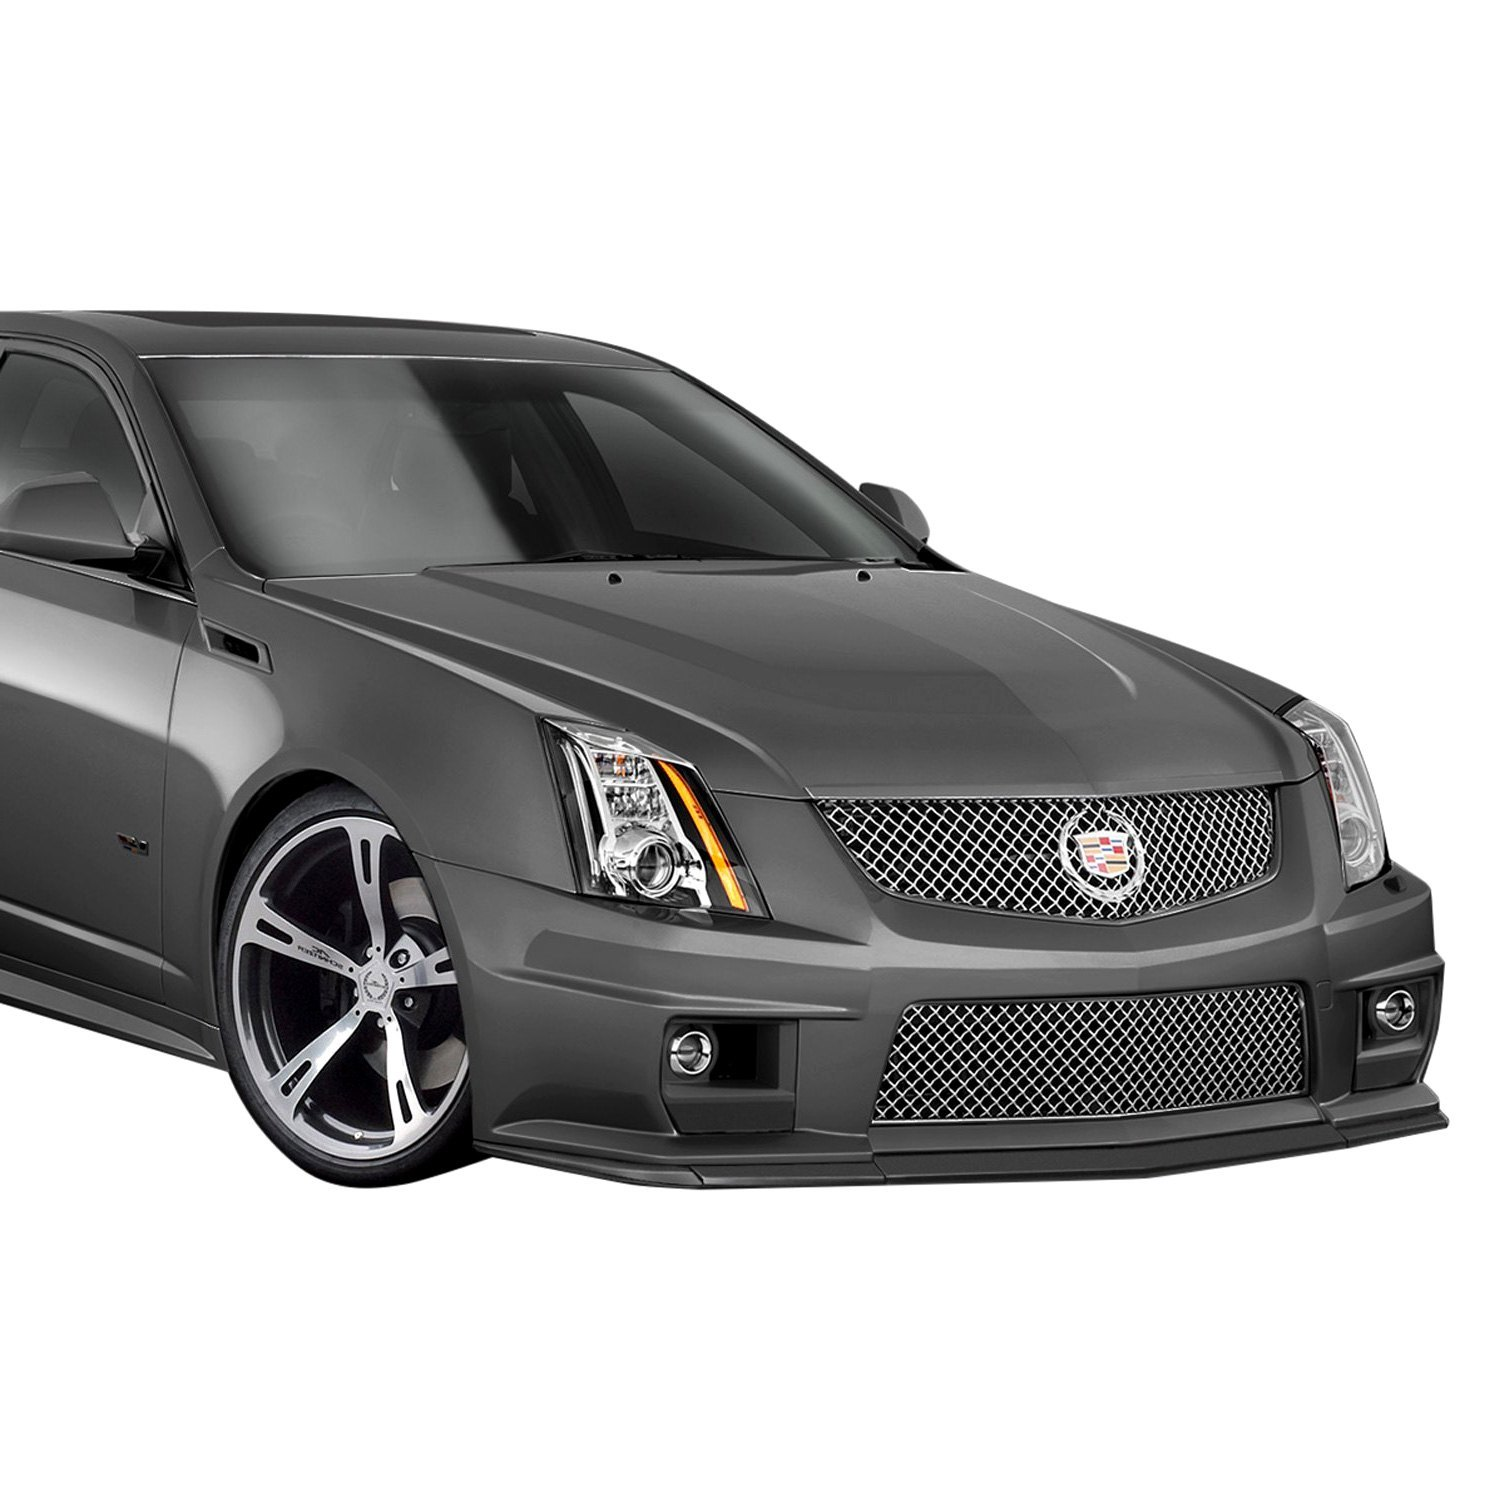 Cadillac Cts 2013 Price: For Cadillac CTS 2009-2013 Duraflex G2 Style Fiberglass Front Splitter Unpainted 6544839129258